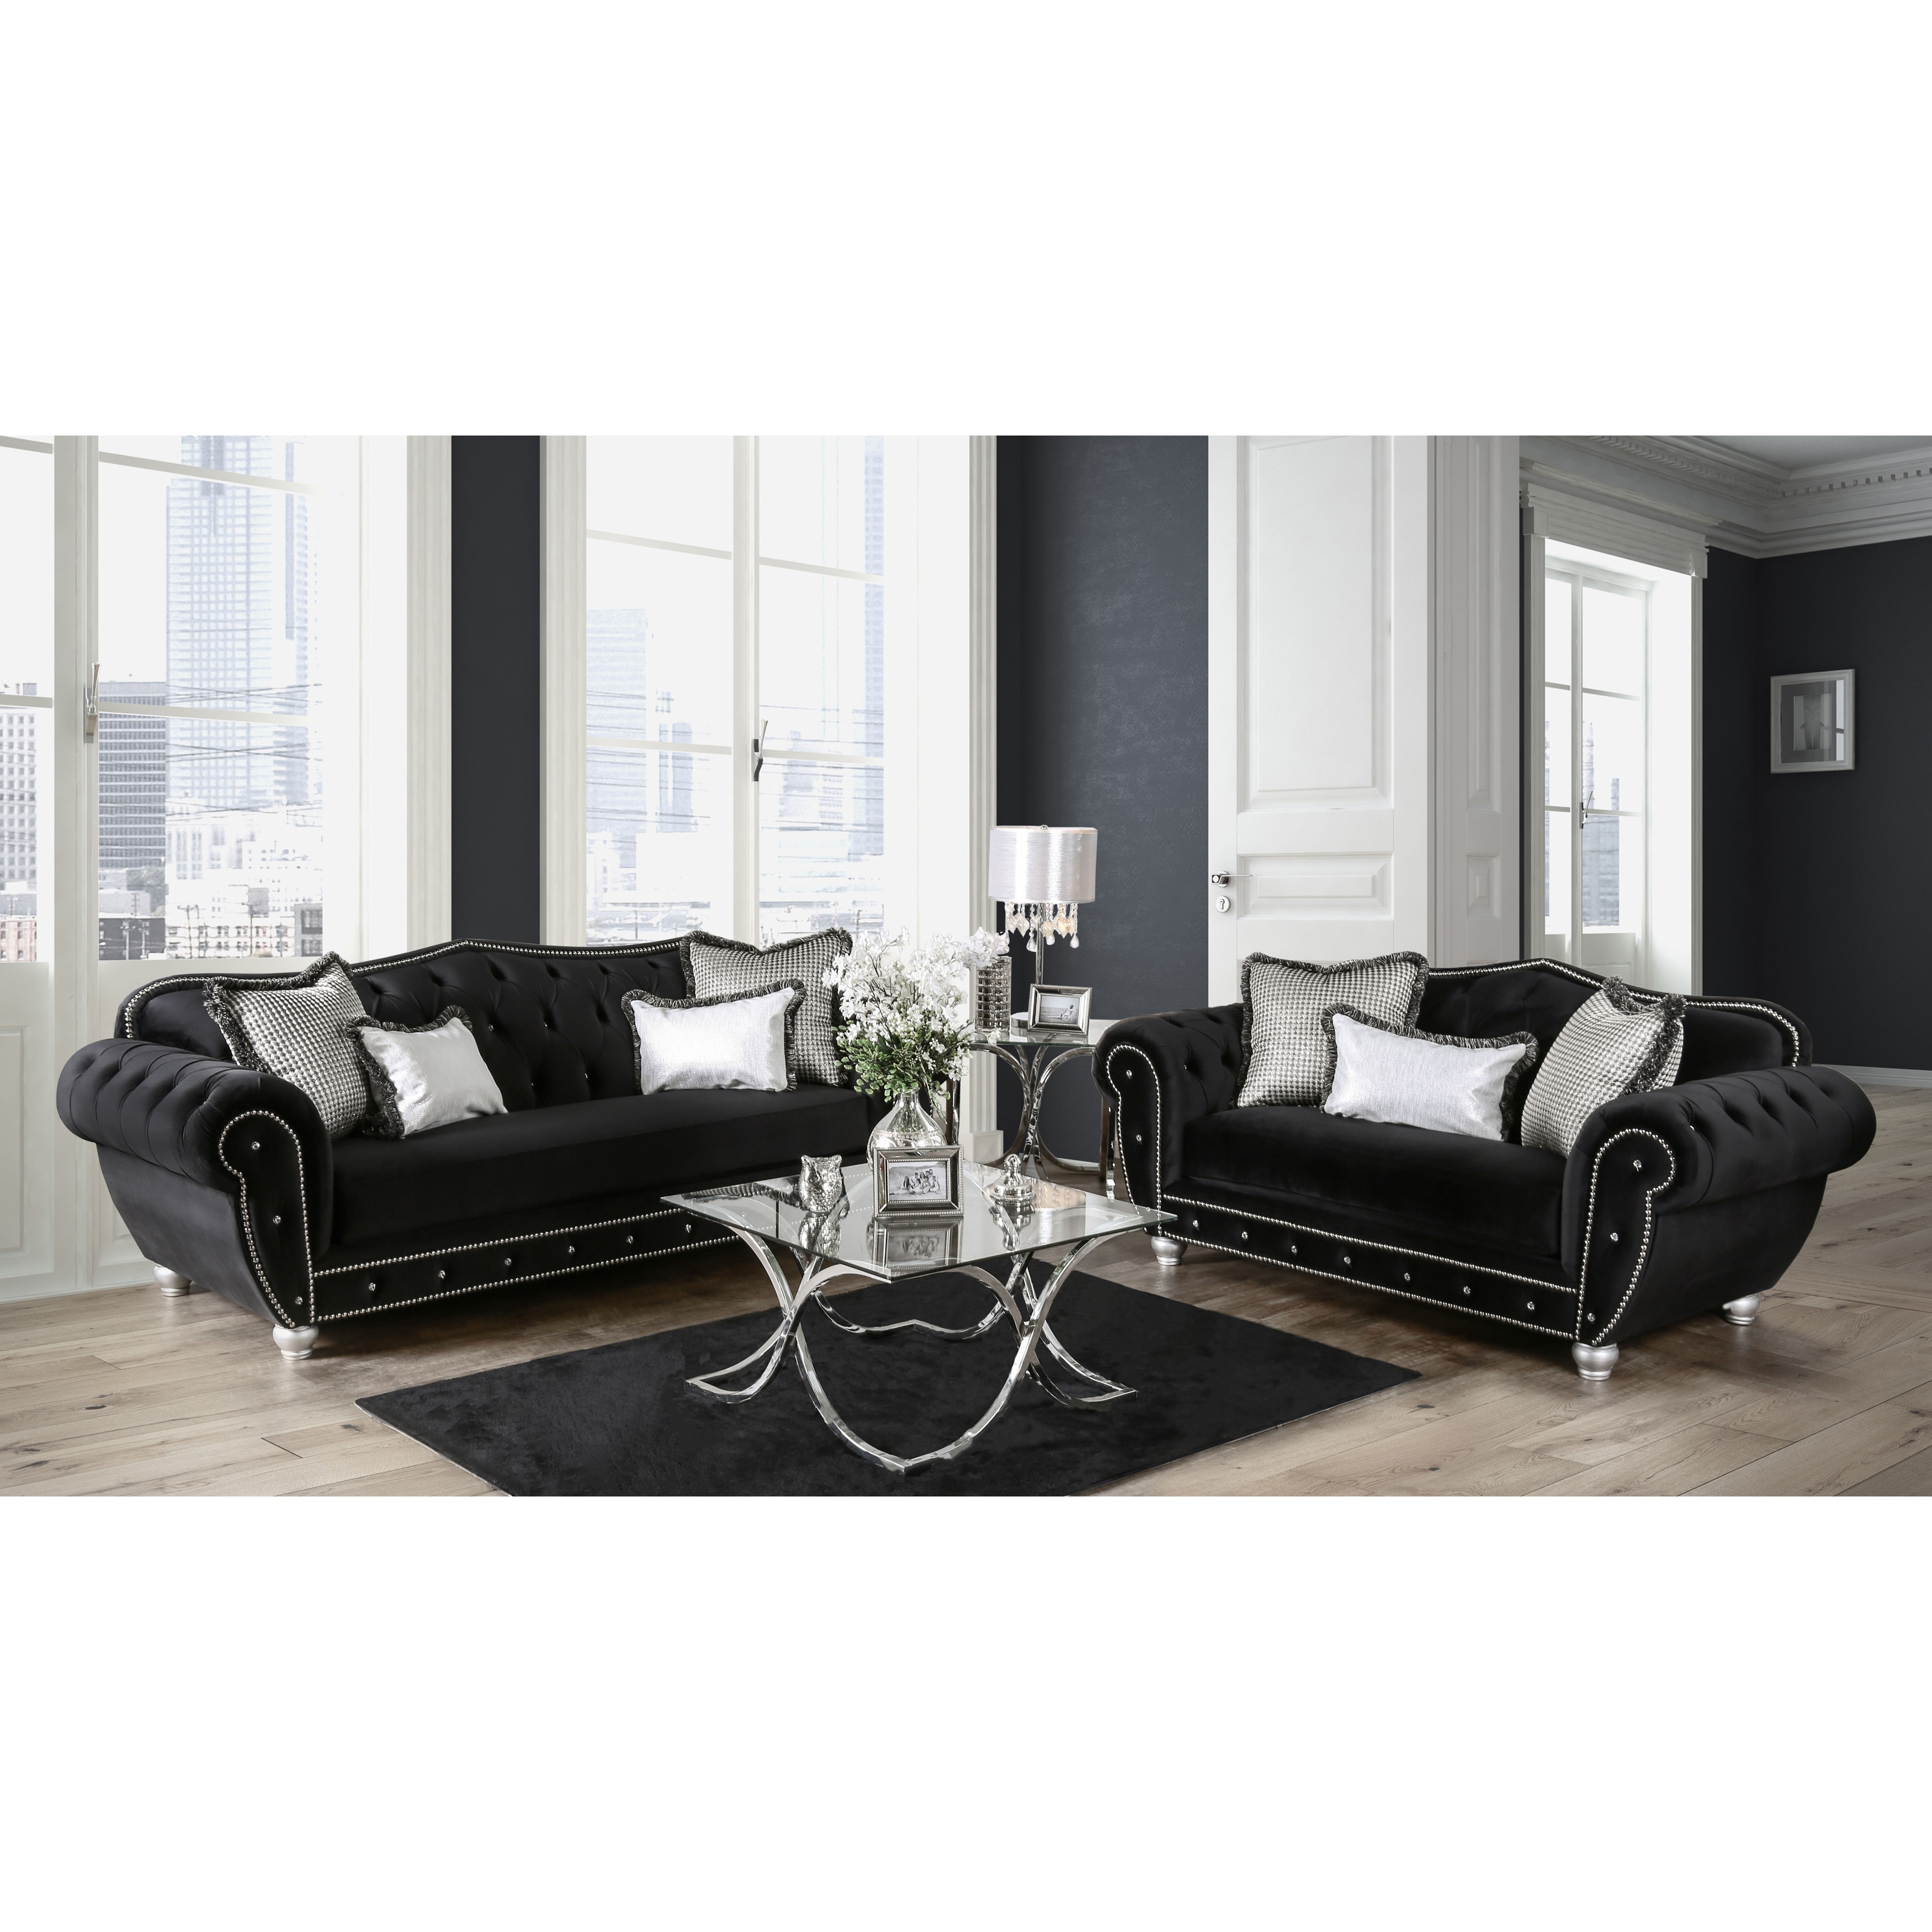 Furniture Of America Renee Formal 2 Piece Premium Black Tufted Velvet Sofa Set On Free Shipping Today 13767801